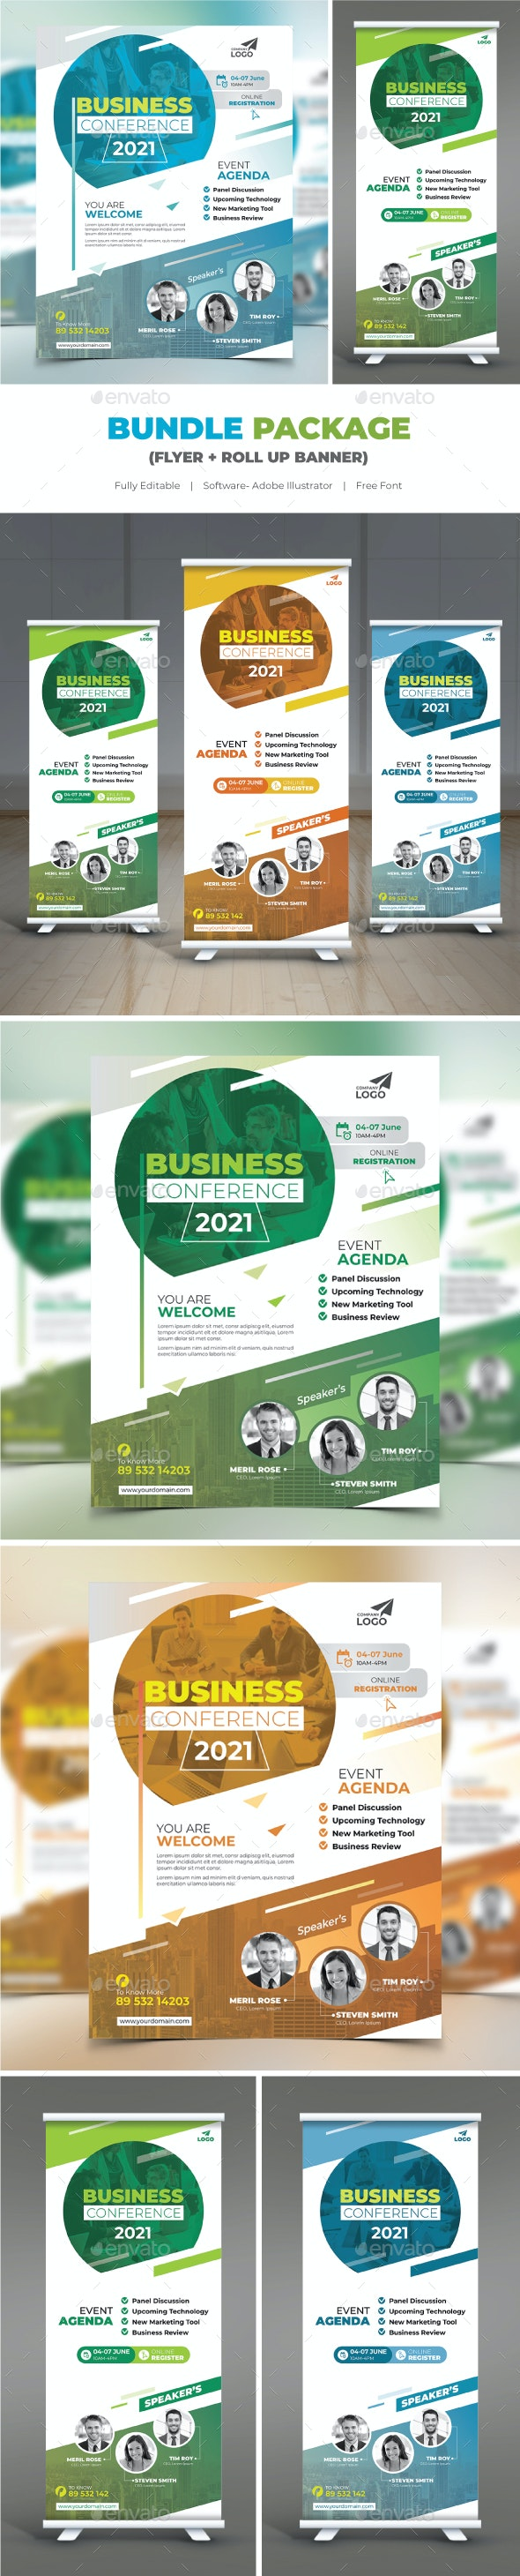 Conference Bundle (Flyer+Roll Up) - Corporate Flyers